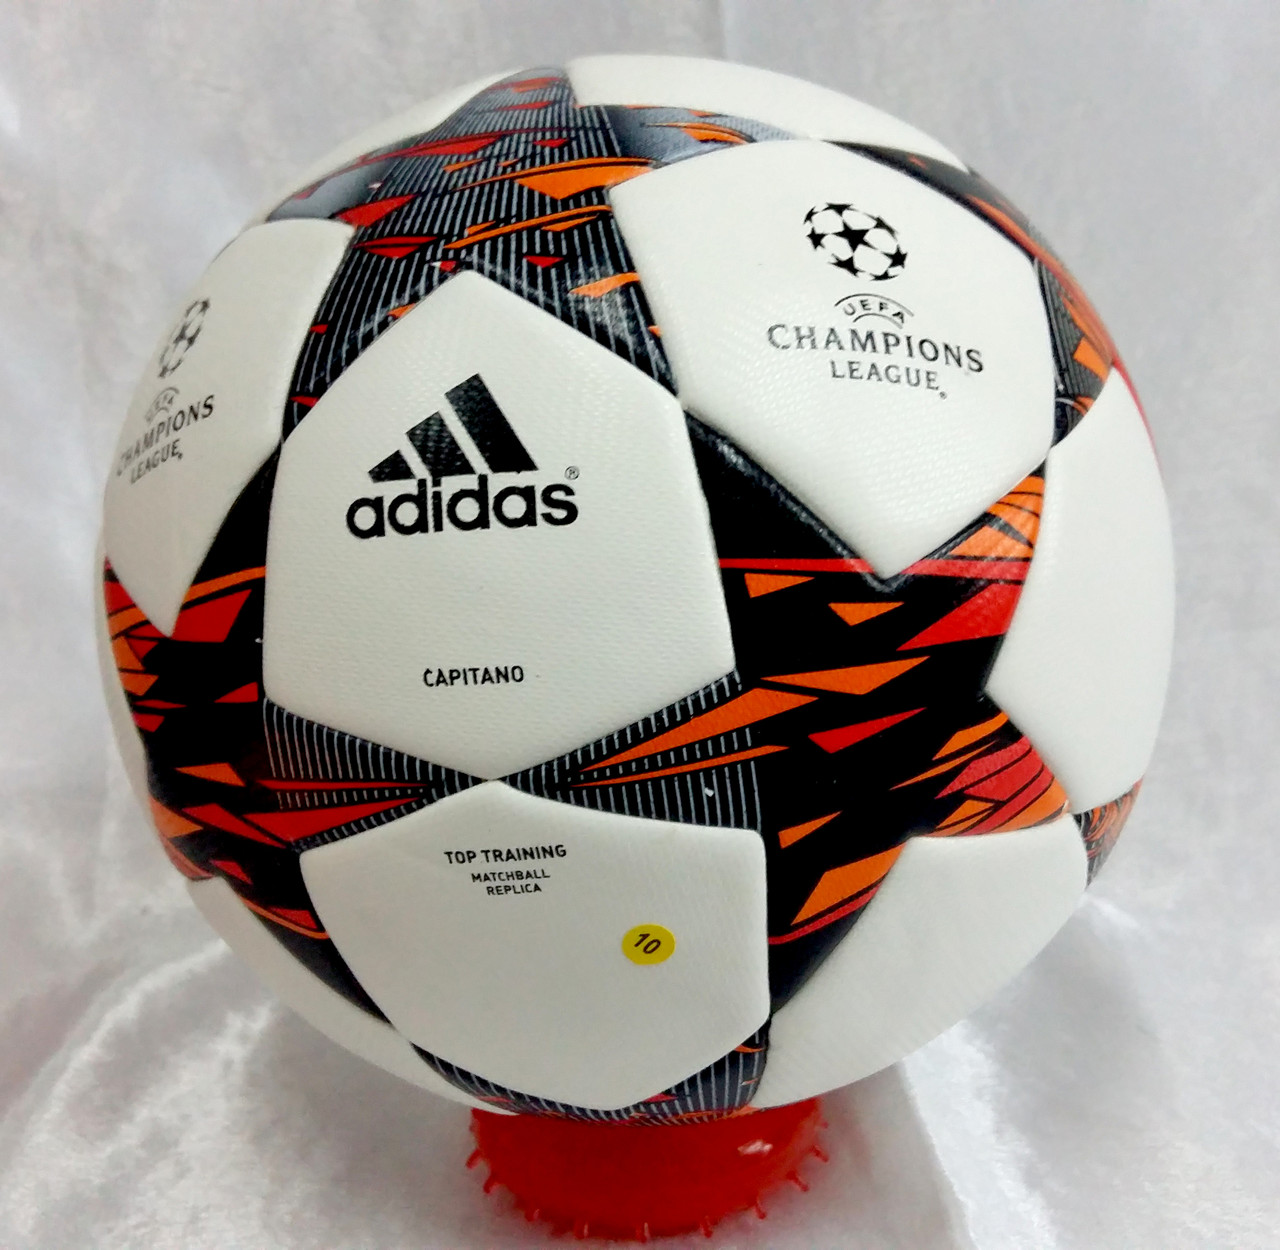 Мяч футбольный Adidas UEFA champions league football Size 4 - ALEM SPORT в  Алматы 11e7bfe1db0d7